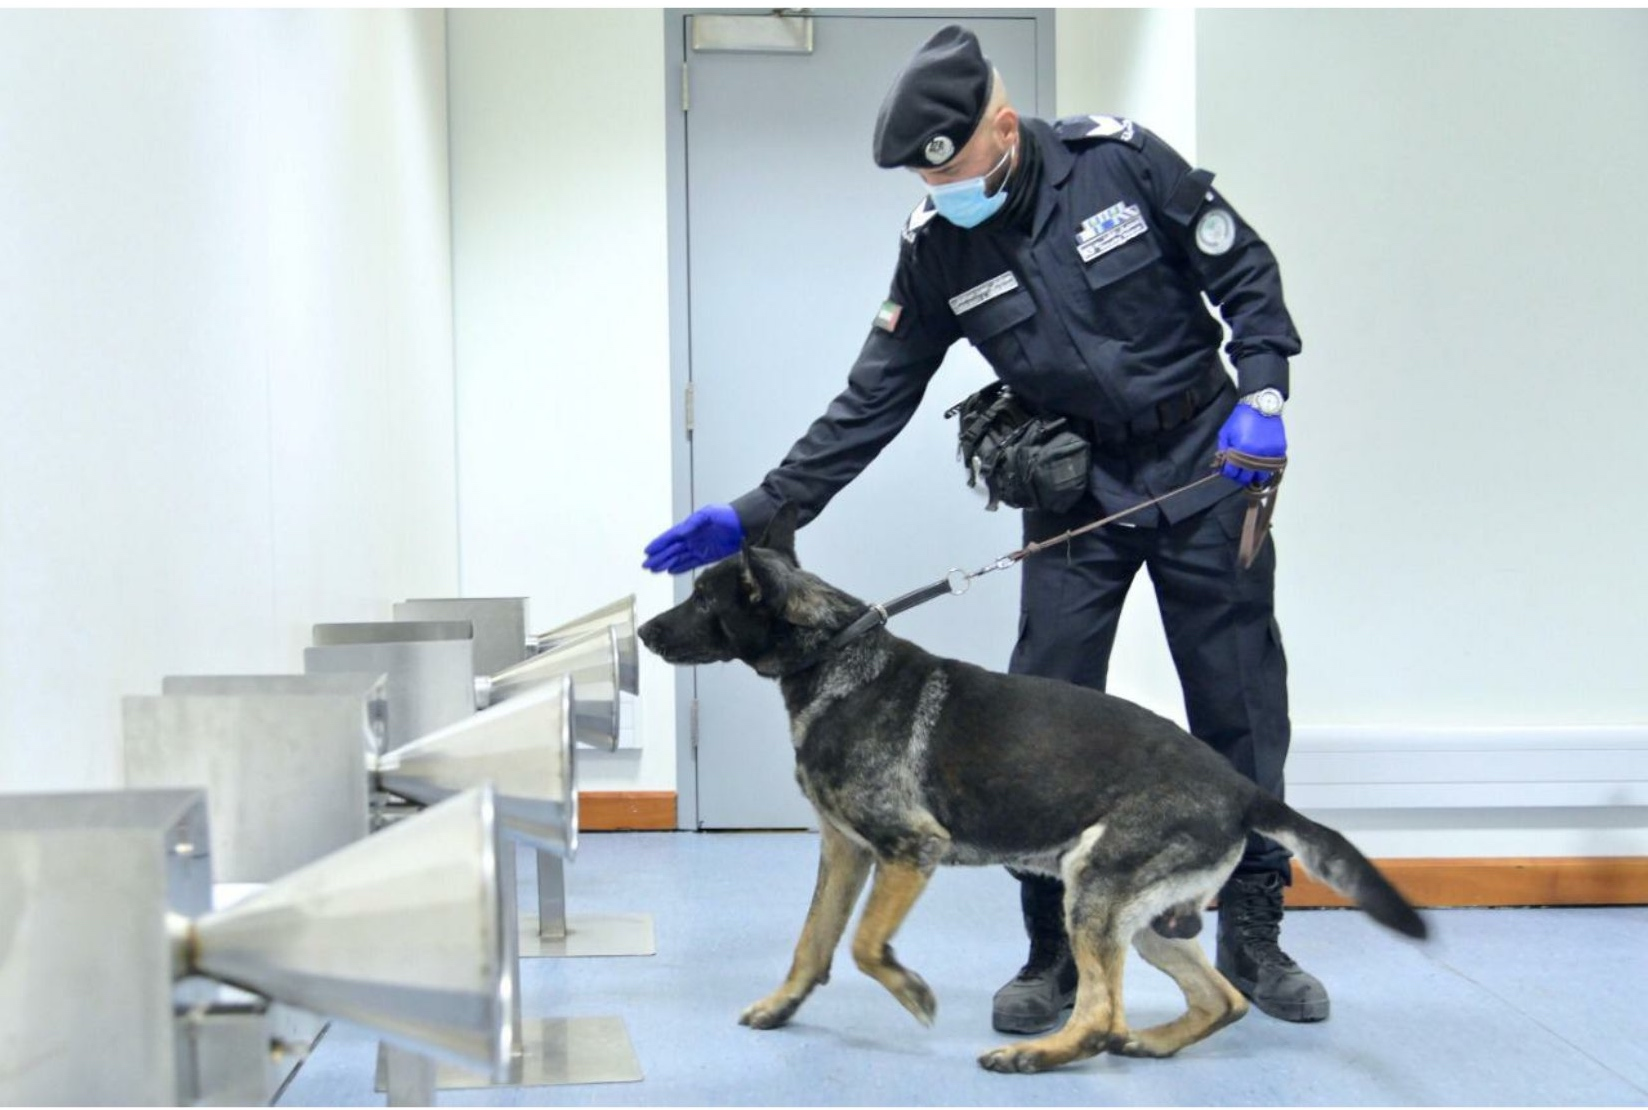 sniffing dogs in action at Dubai airport